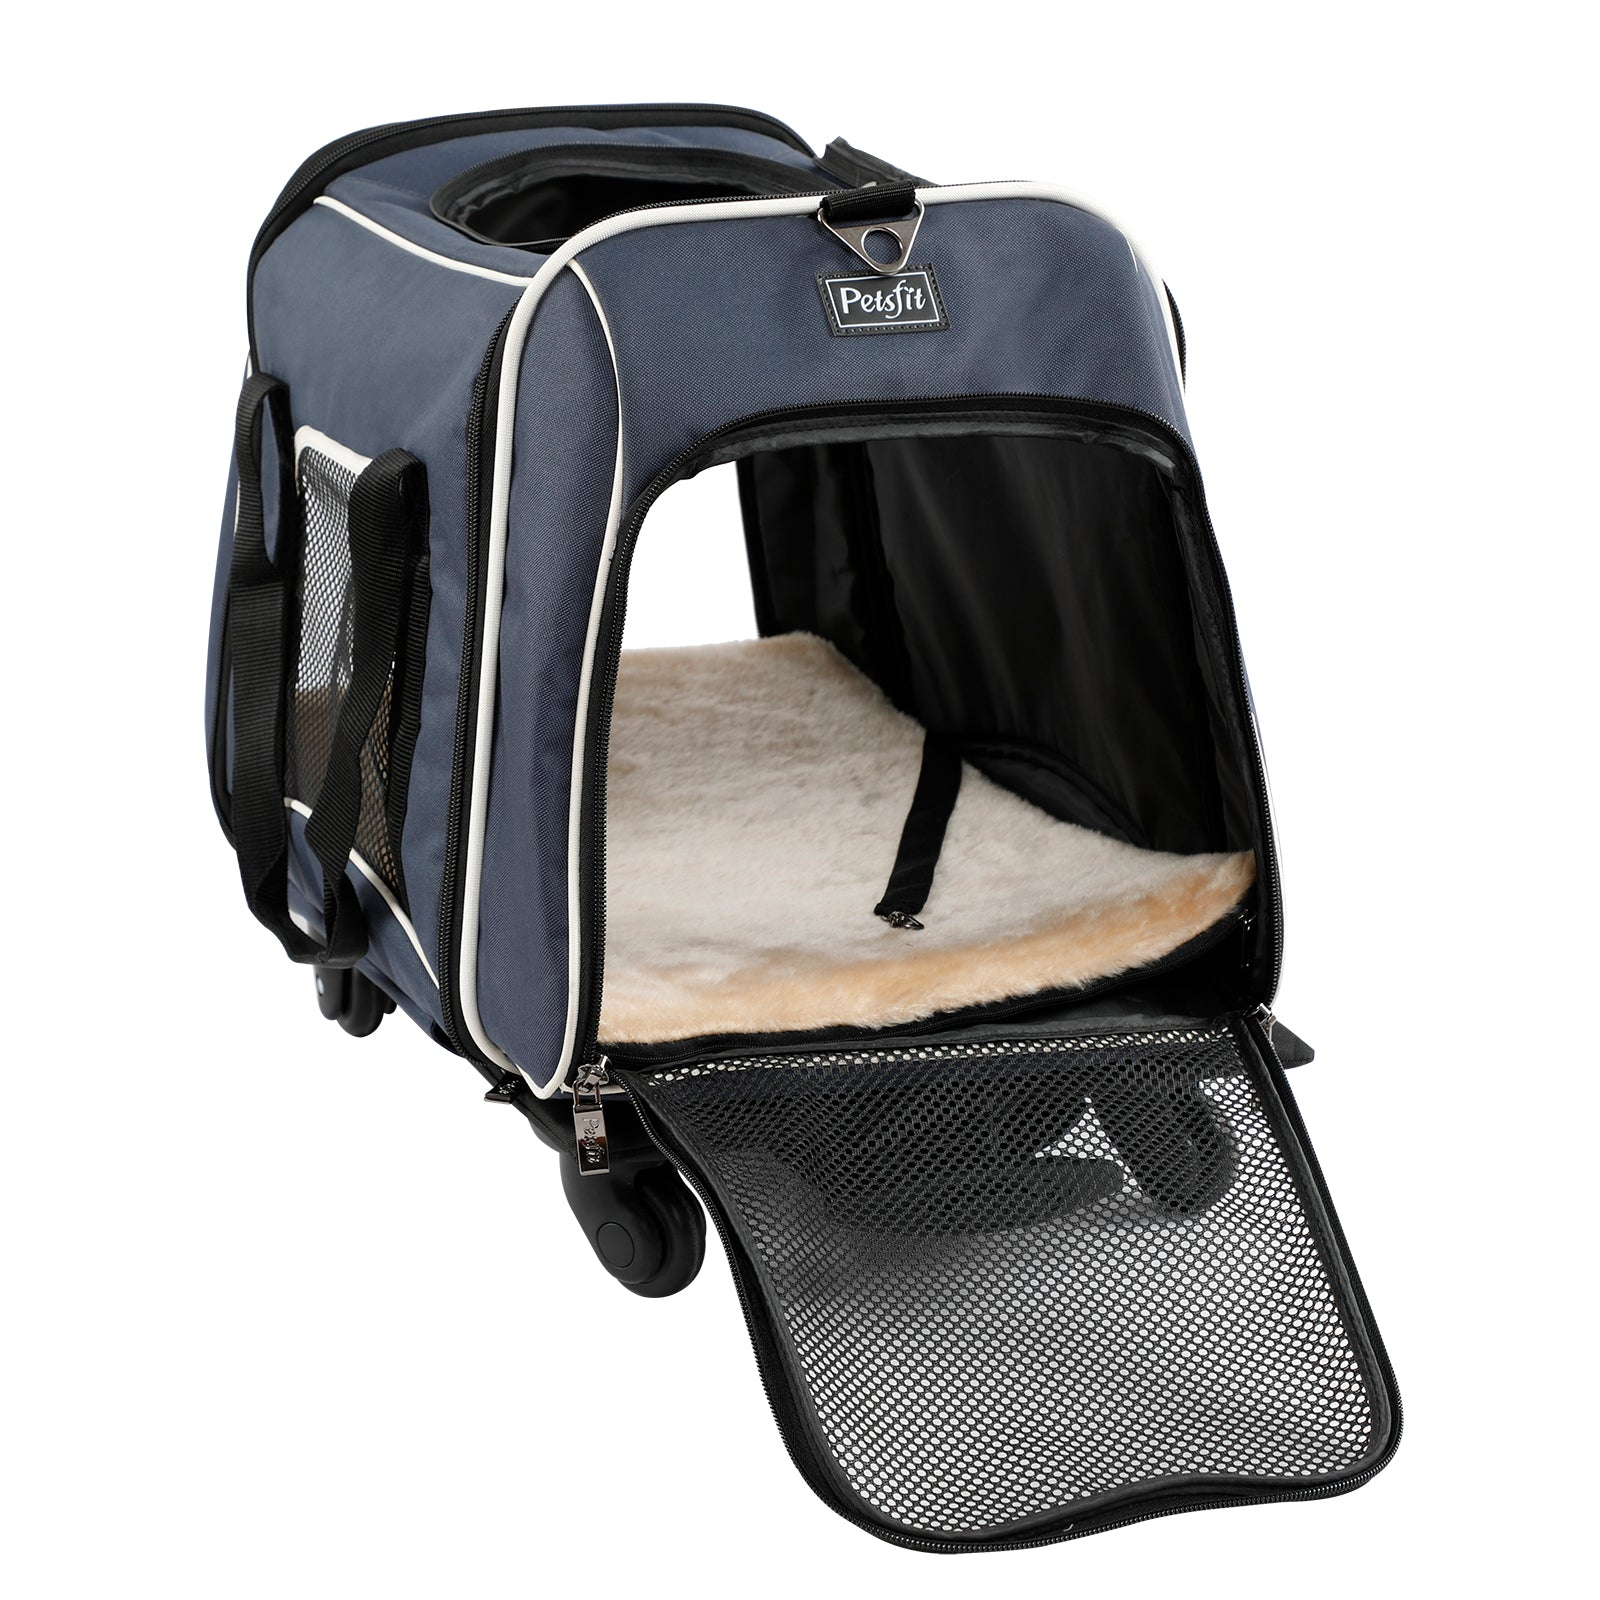 Petsfit Pet Carrier with Removeable Wheels